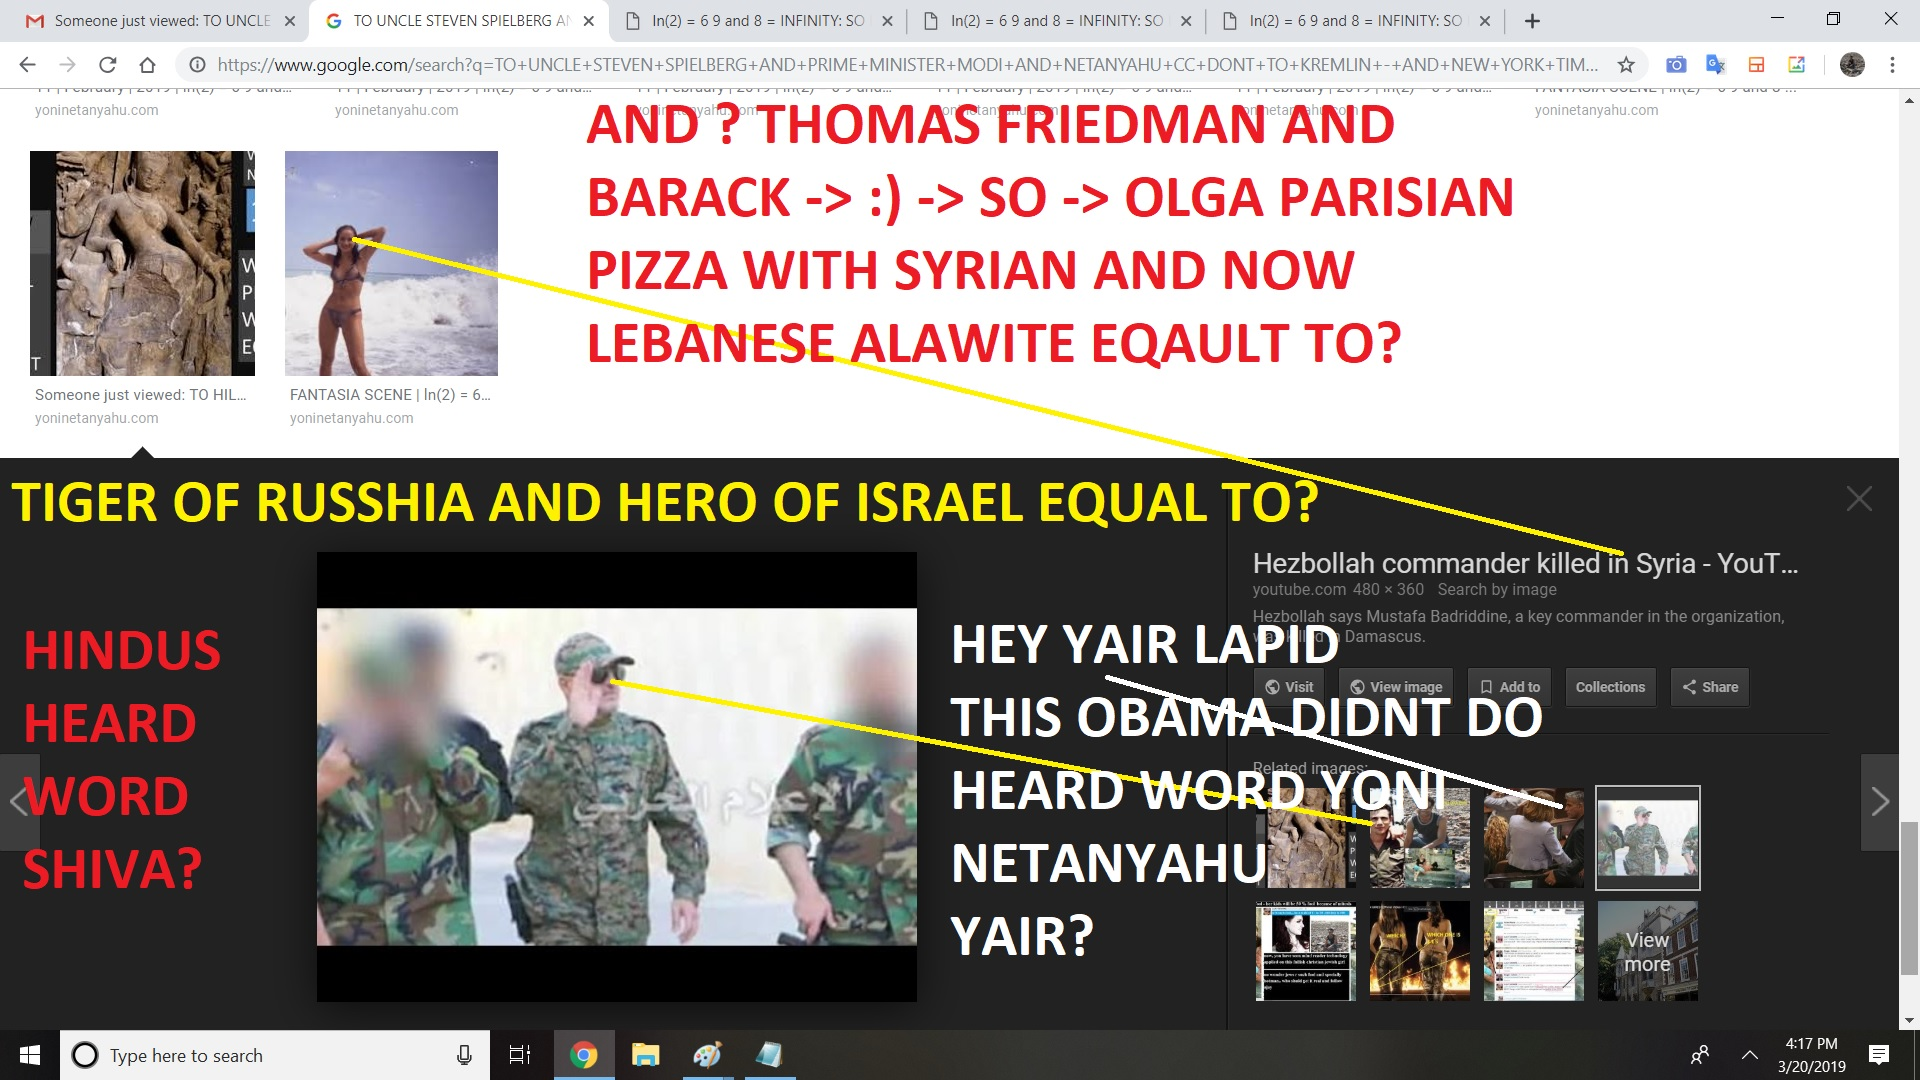 FROM OLGA SHULMAN LEDNCIHENKO TO OBAMA AND THOMAS FRIEDMAN AND WHATS THEIR NAMES SIARELIES SPECIALLY LIVNI AND YAIR LAPID AND BENNY GANTZ